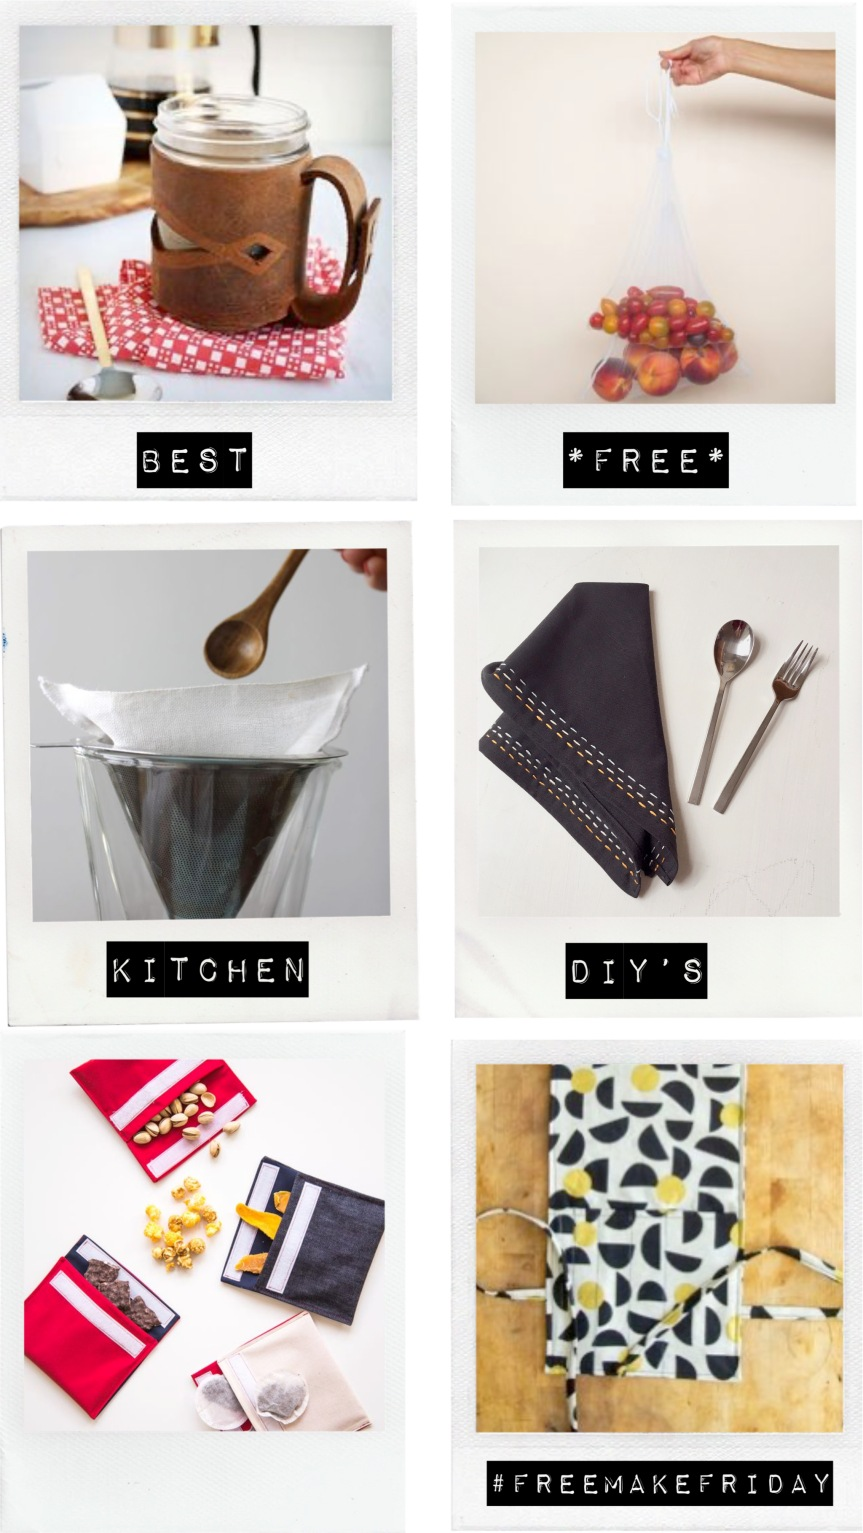 #freemakefriday Best Kitchen DIY's